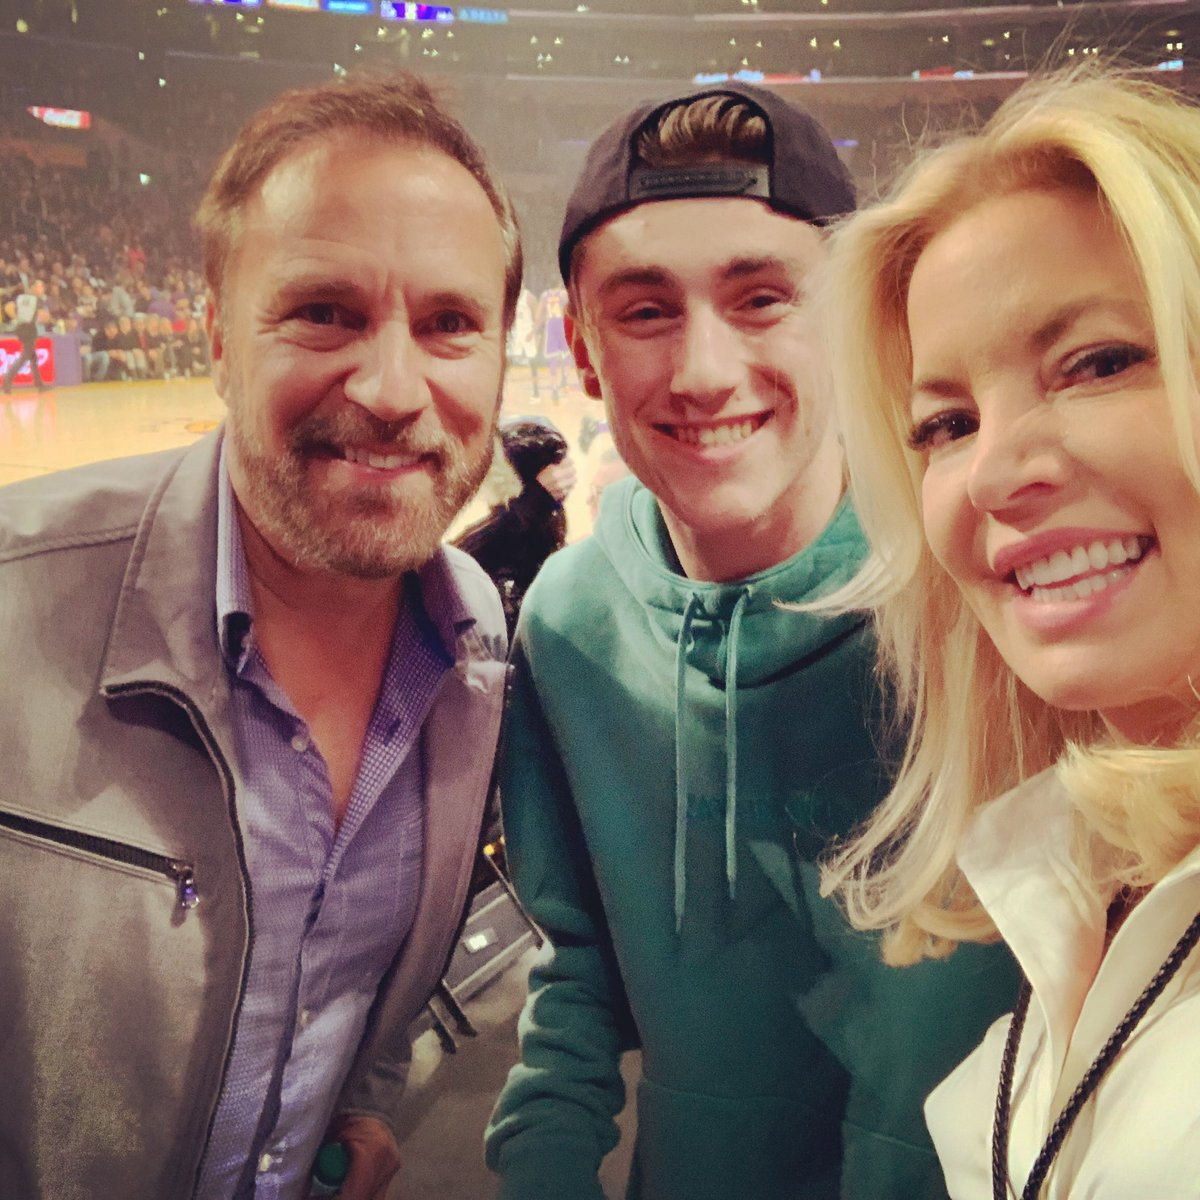 "Son away at college tells me he saw his old school pal Sam on Instagram w/his #Lakers owner AuntJeanie. I arrive at #lakersgame - ""Hey Jeanie, Justin saw you in a pic w/AdamLevine's brother."" @JeanieBuss: ""Yes. He's right here."" Boom. Snap. #lifeatthestaplespic.twitter.com/vjtwrw8yTd"